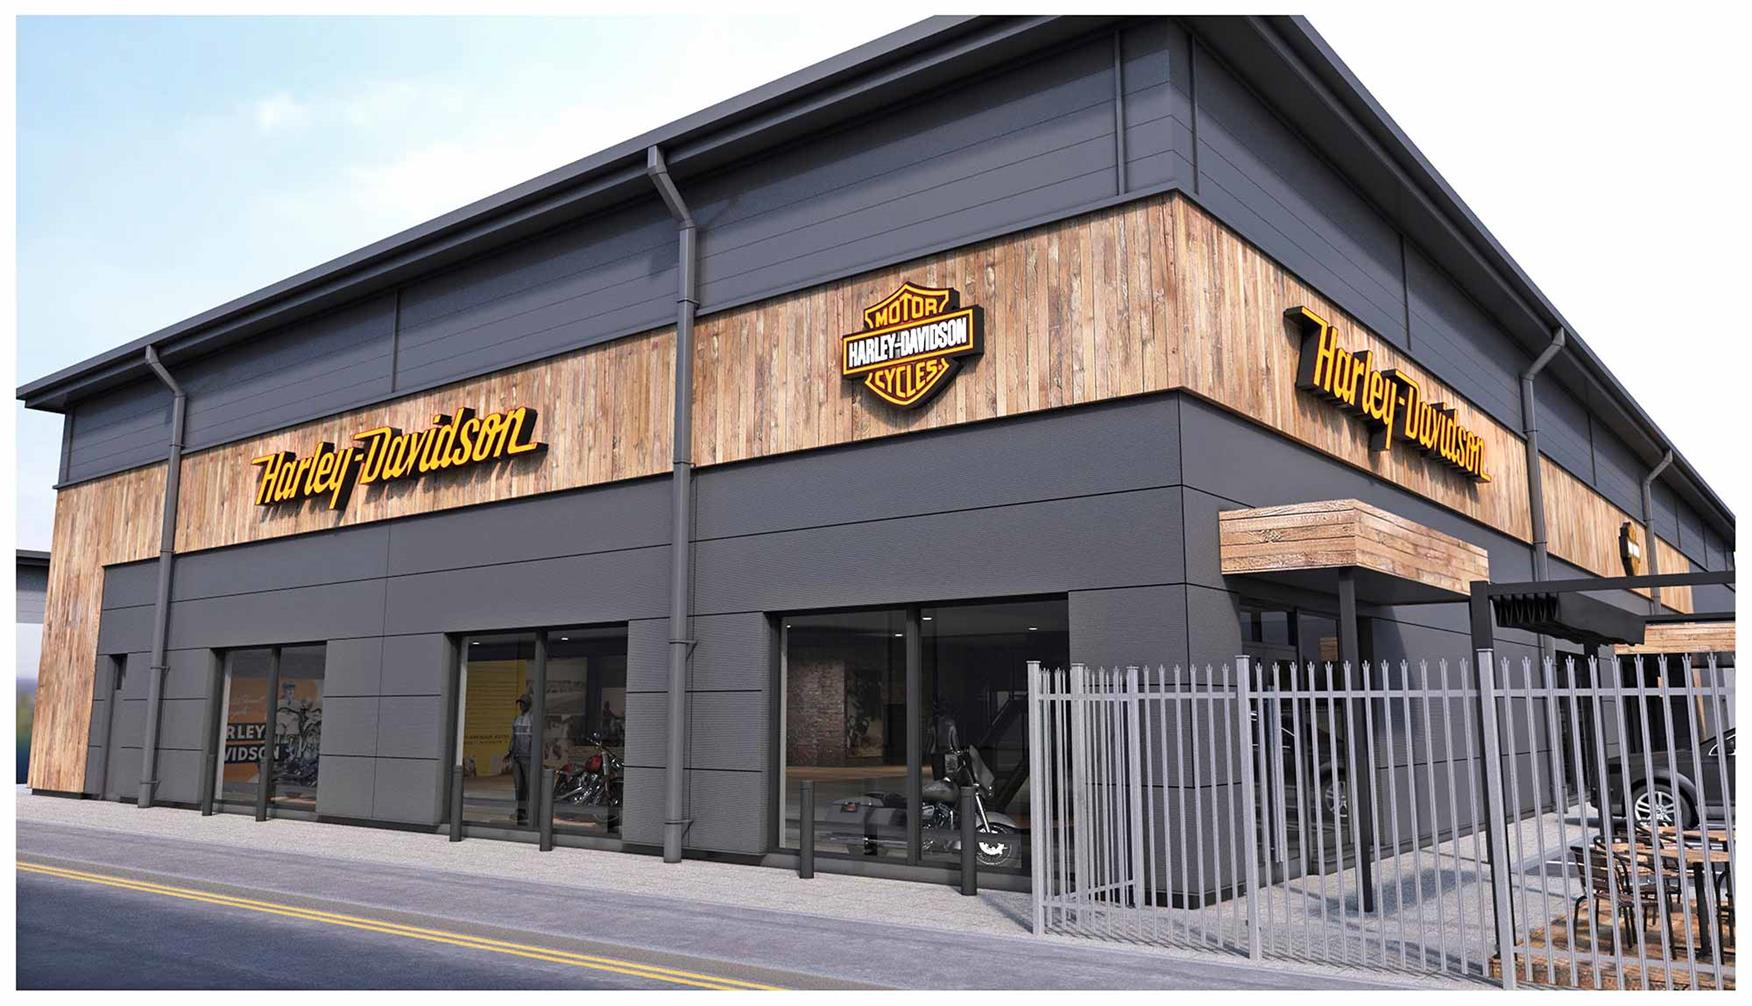 Newmarket gets UK's largest Harley-Davidson dealership